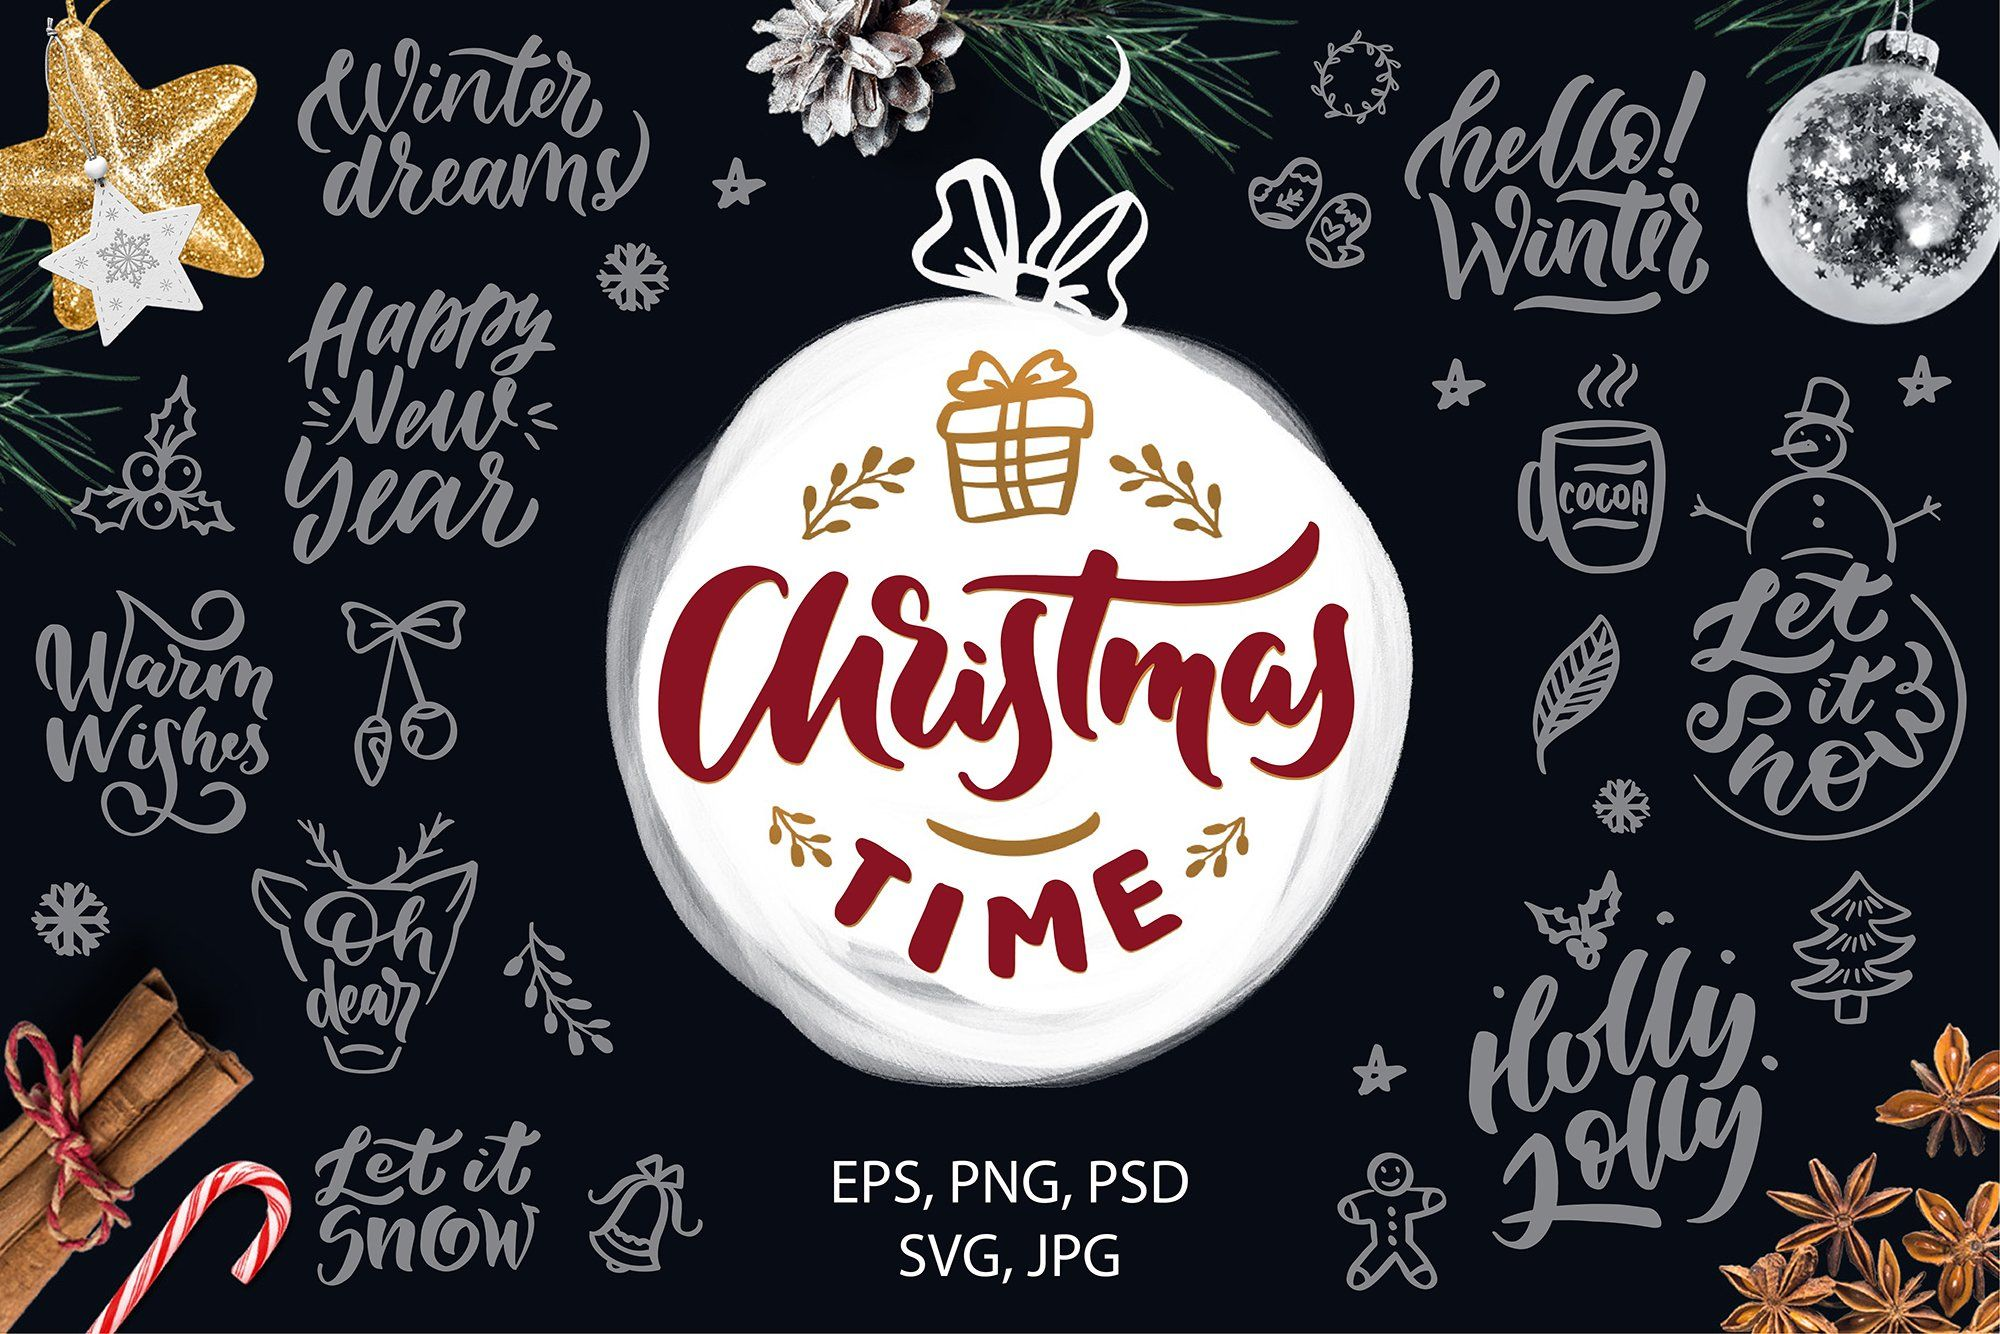 Christmas Time Lettering Pack Christmas Lettering Holiday Lettering How To Draw Hands